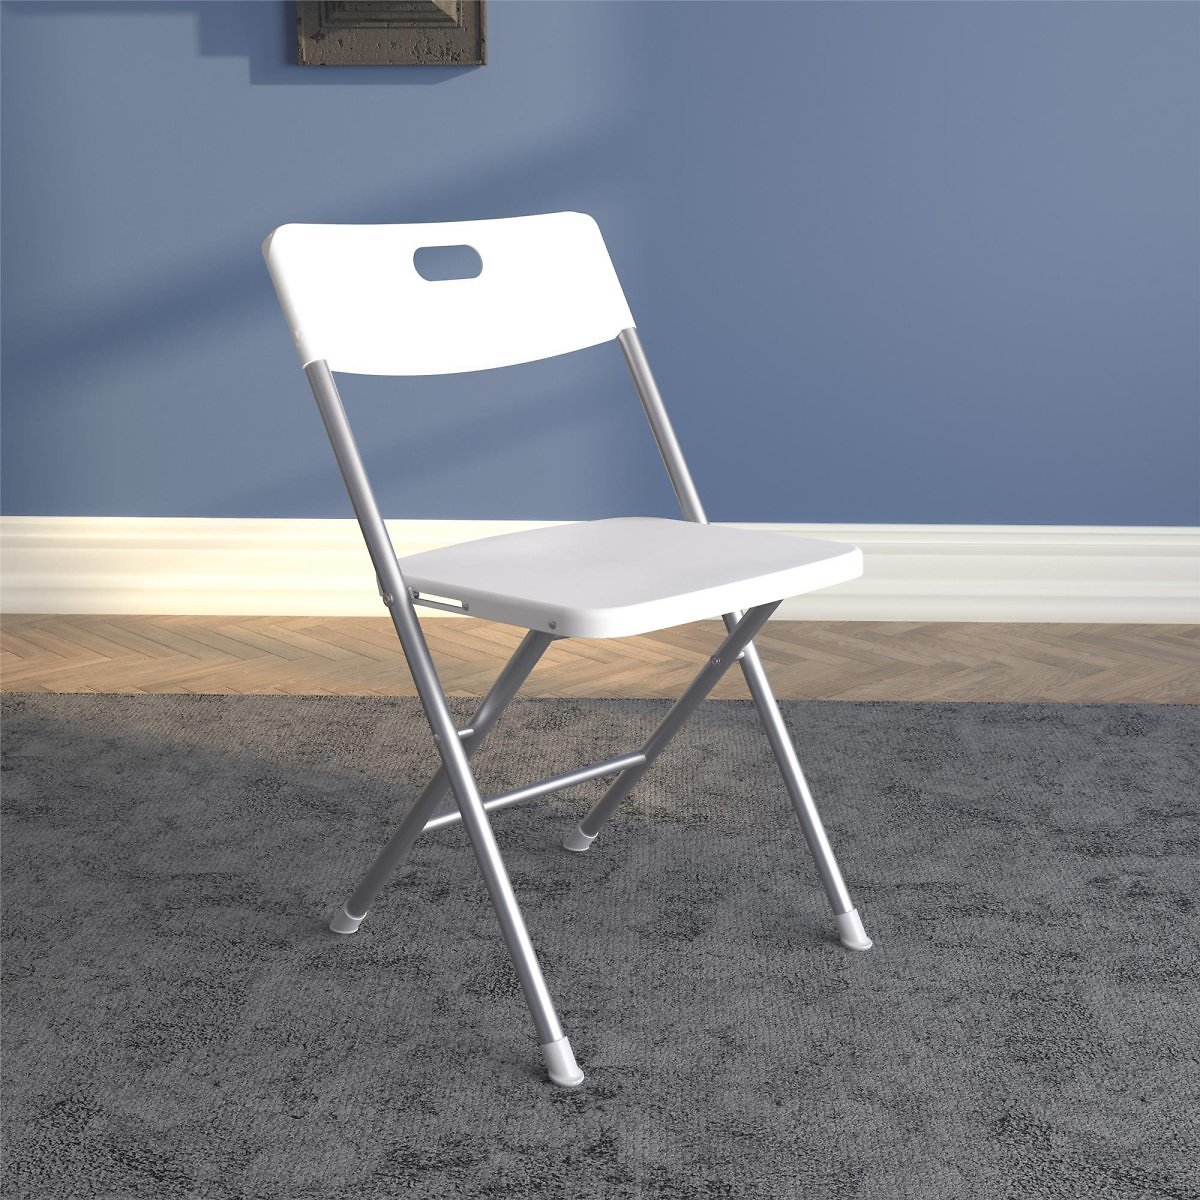 Mainstays Resin Seat & Back Folding Chair, White, 4-Pack